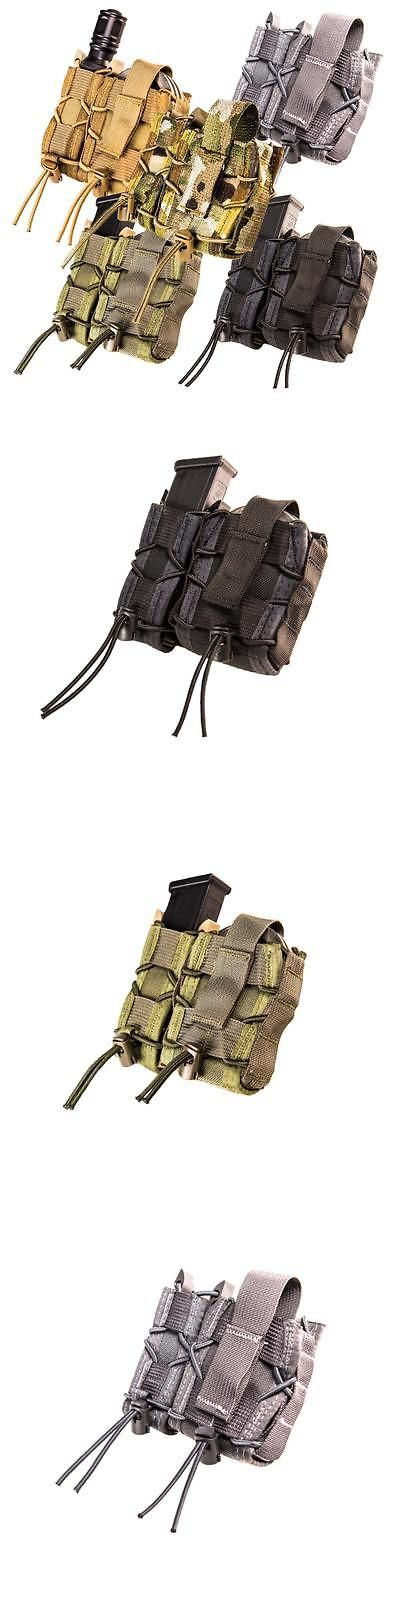 Tactical Molle Pouches 177900: High Speed Gear Leo Taco Molle Pistol Handcuff Taco Combo Pouch, Made In The Usa -> BUY IT NOW ONLY: $55.95 on eBay!